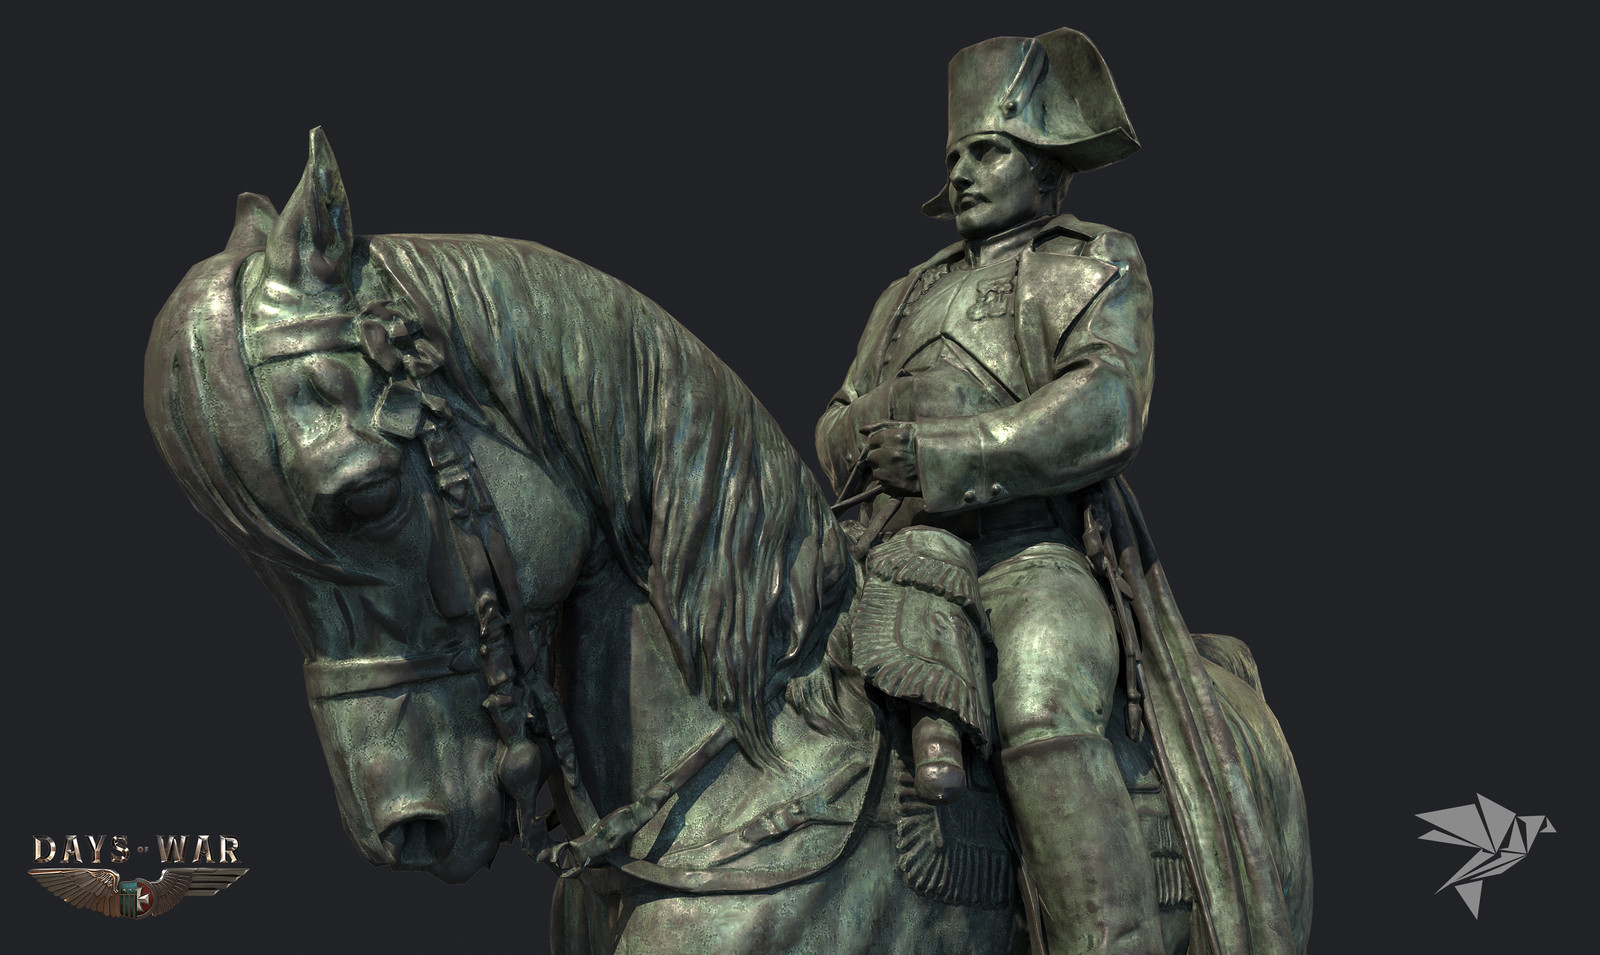 Days of War Napoleon Statue